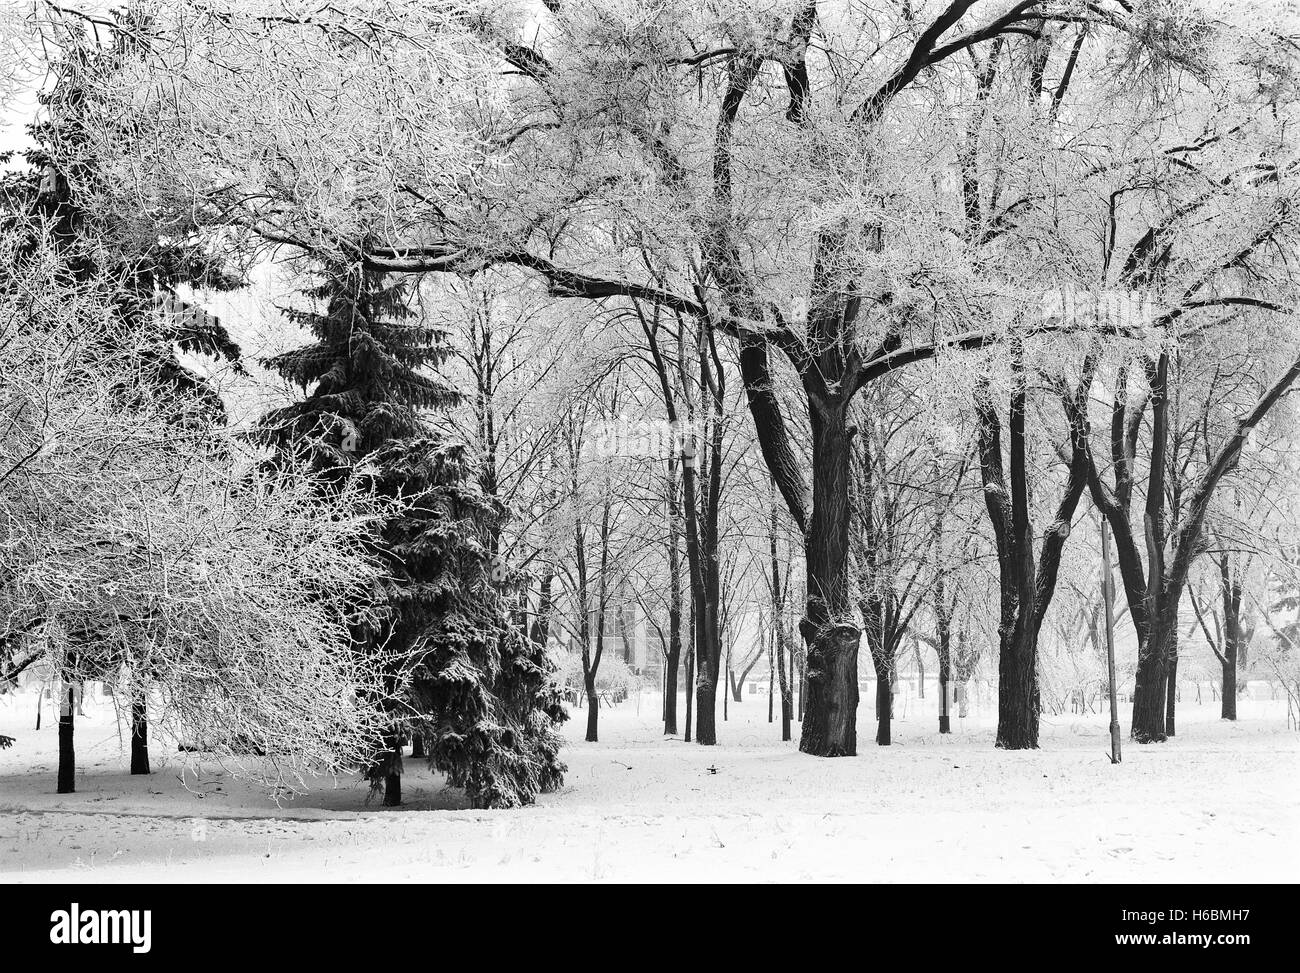 Winter city park with snowbound trees; scanned monochrome film - Stock Image